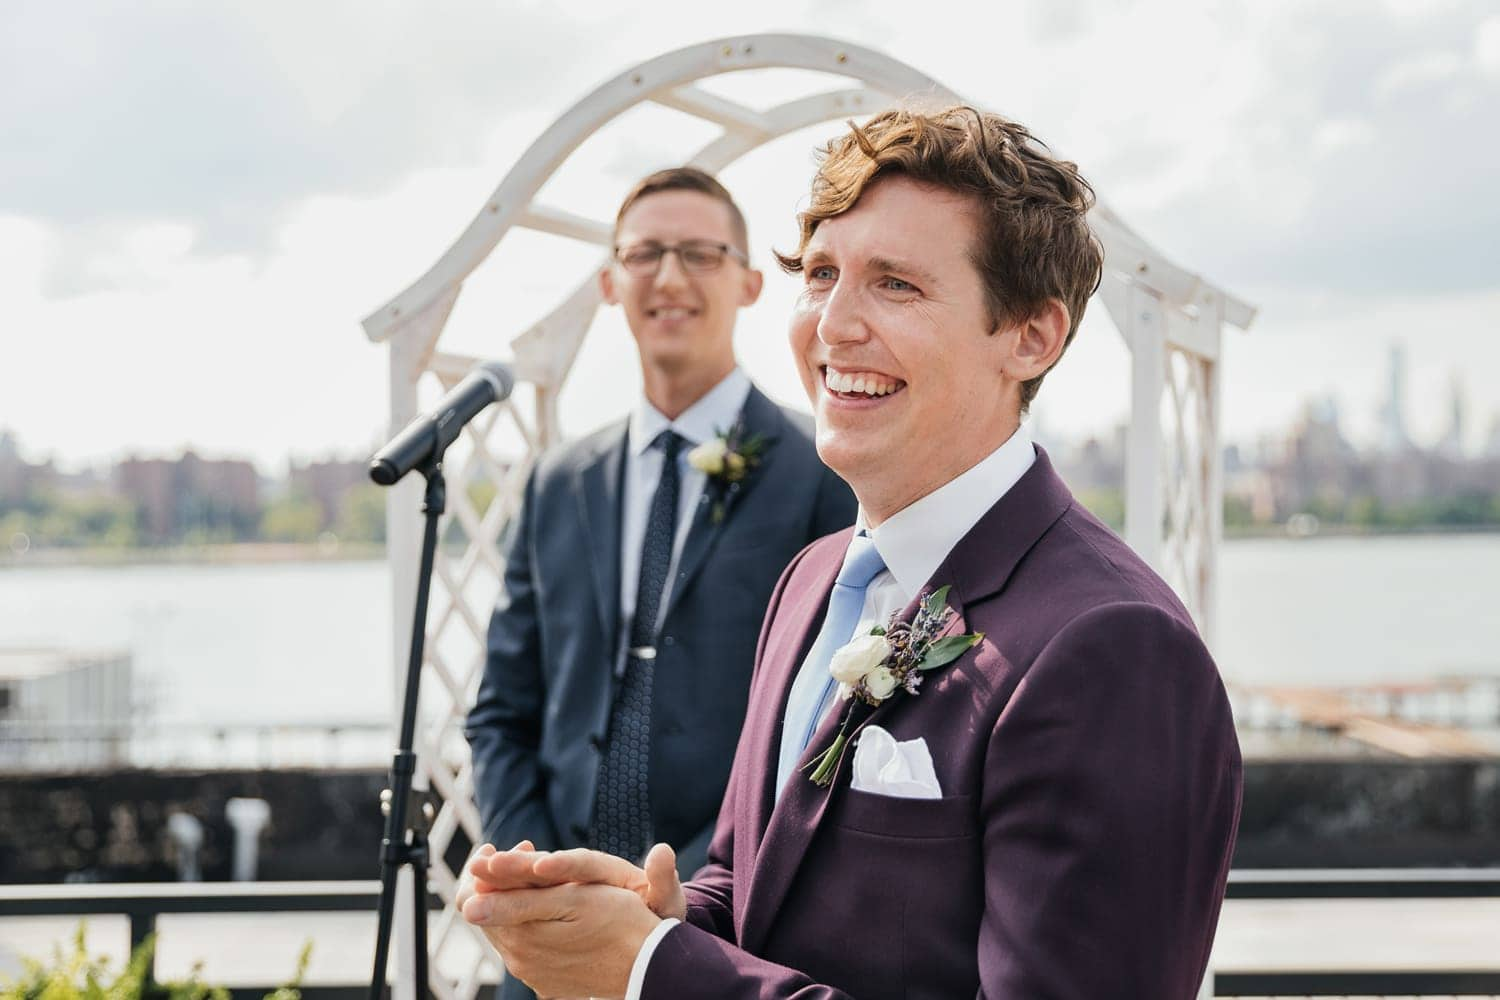 Groom's reaction when he sees his bride at the ceremony